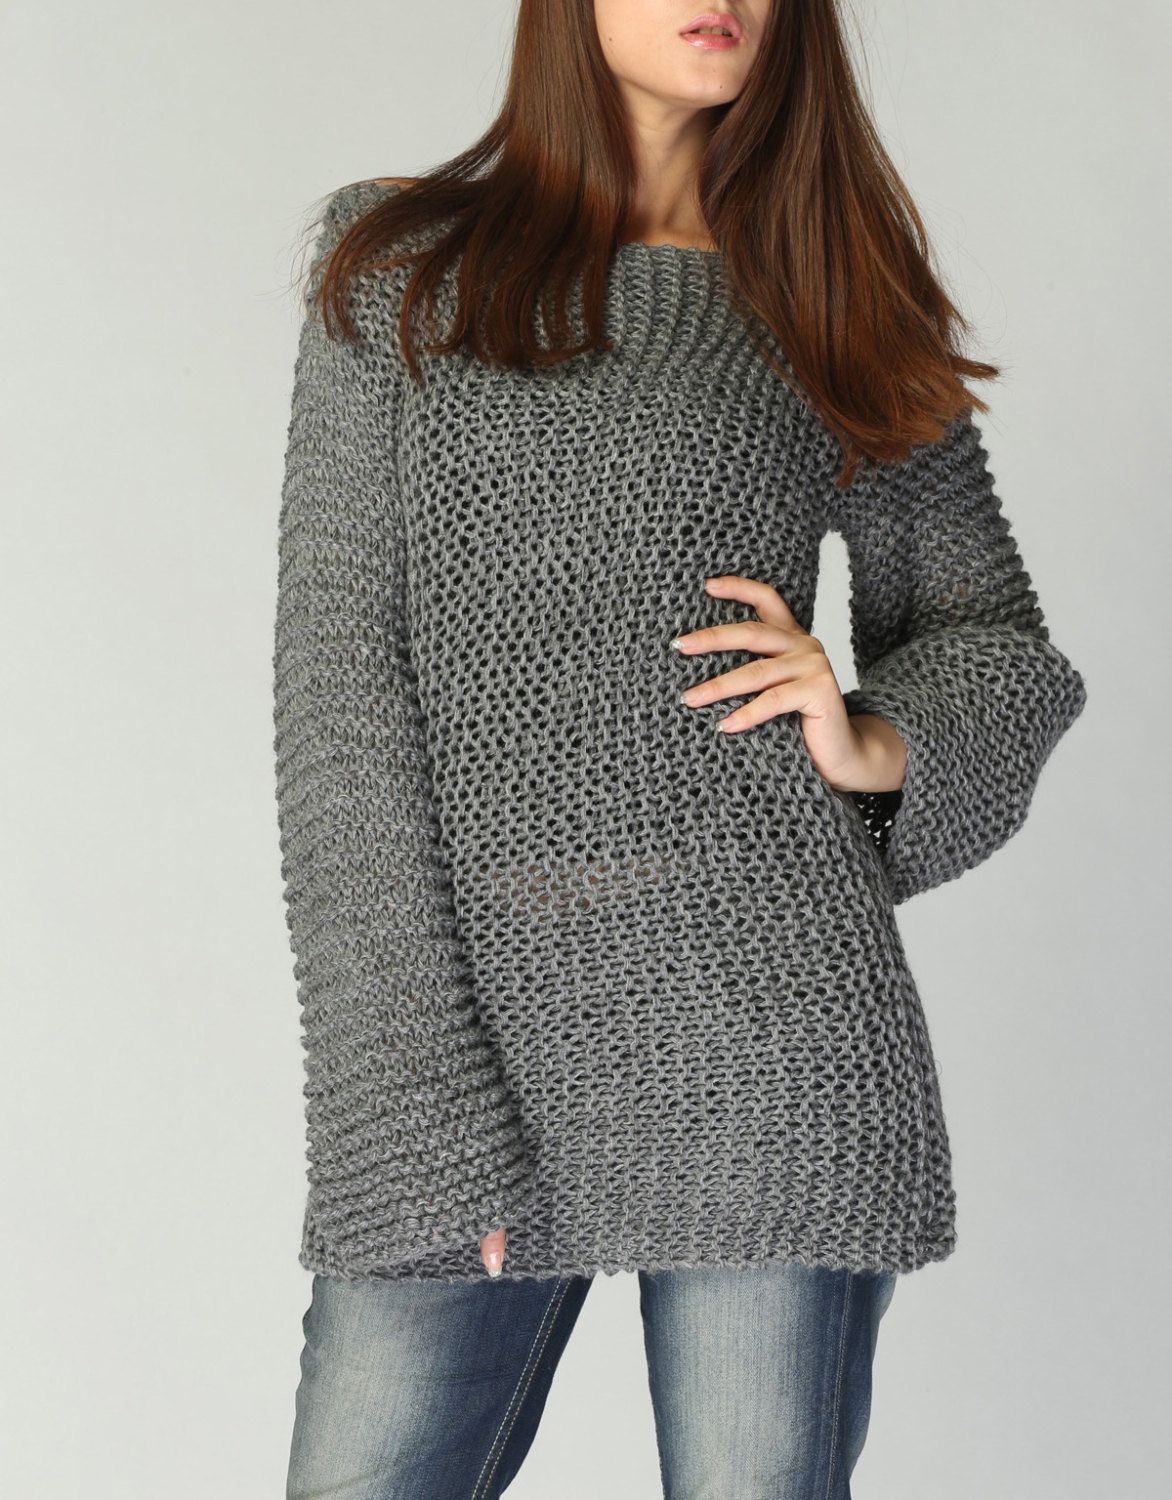 Winter Sweater For Women 2015 Fashion Hand Knitted Sweater